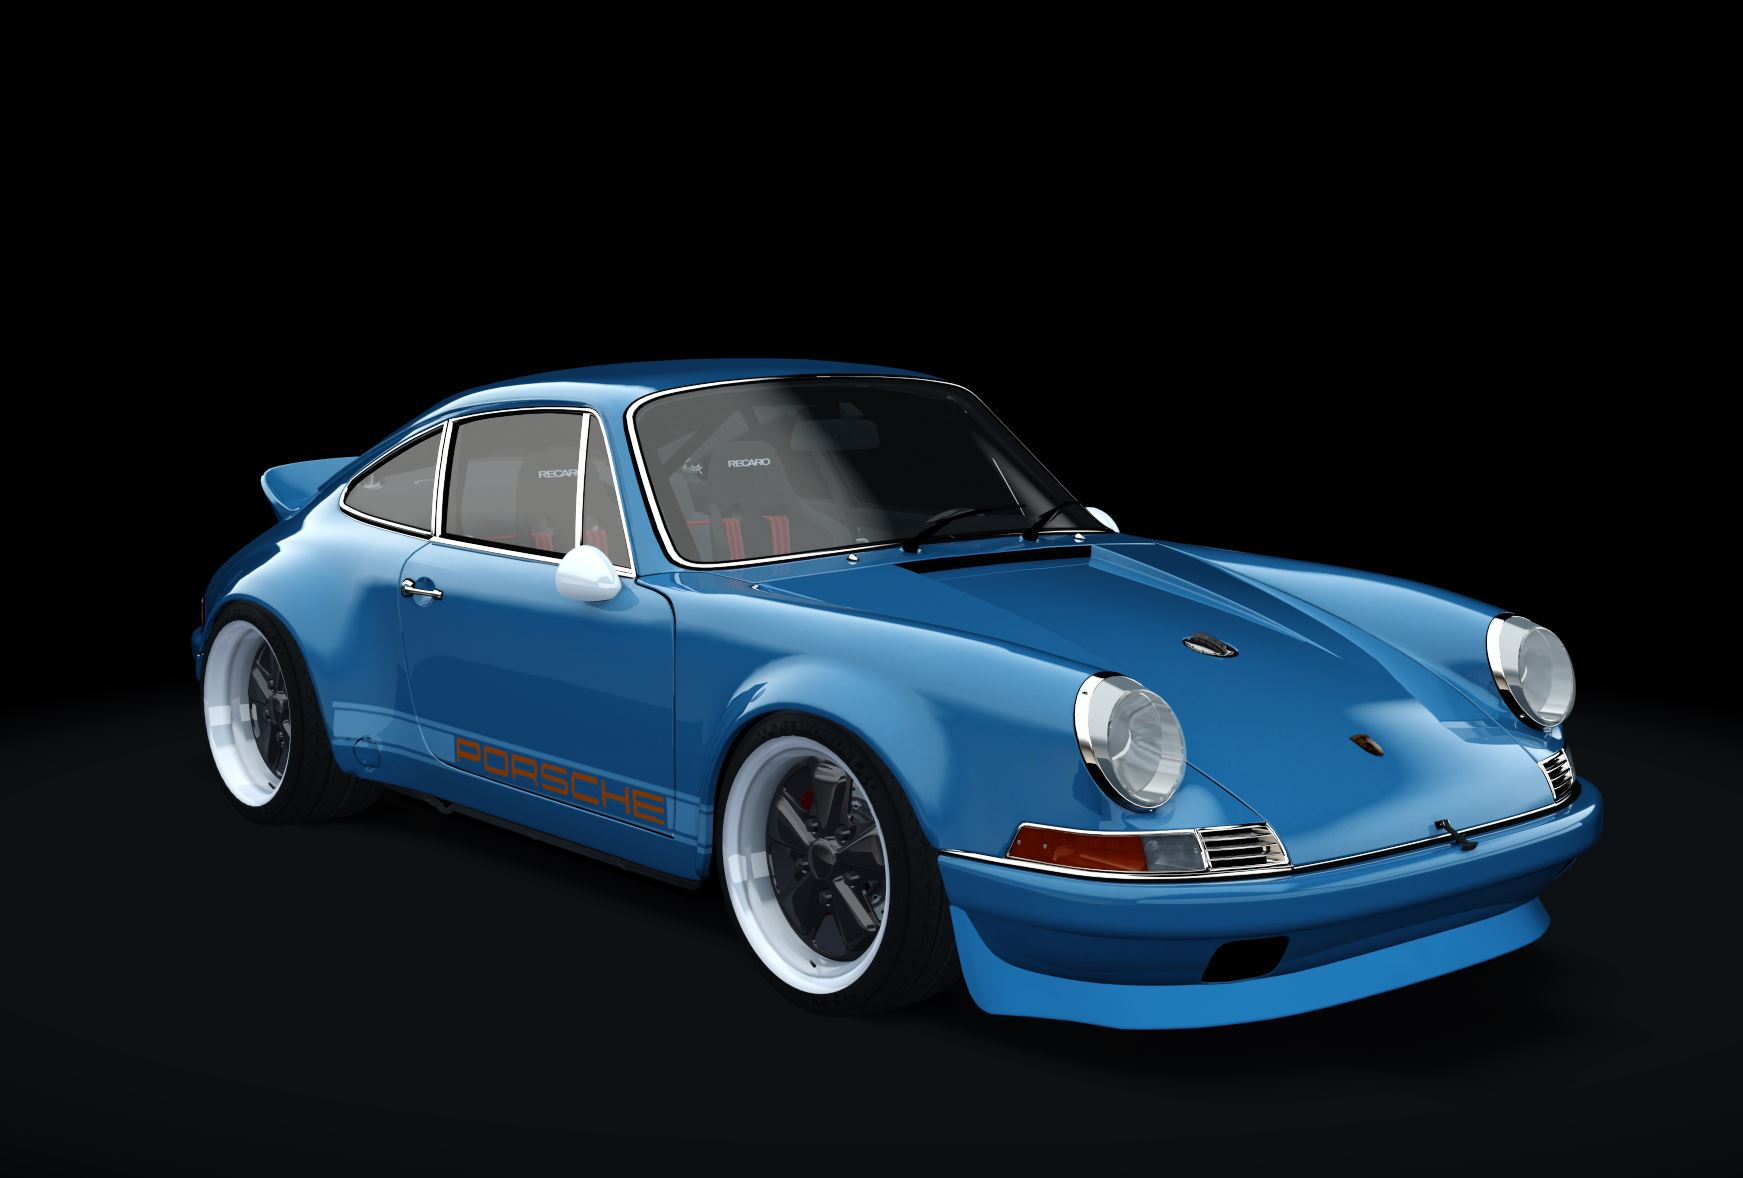 Cars - Singer Porsche 911 (964) | RaceDepartment - Latest